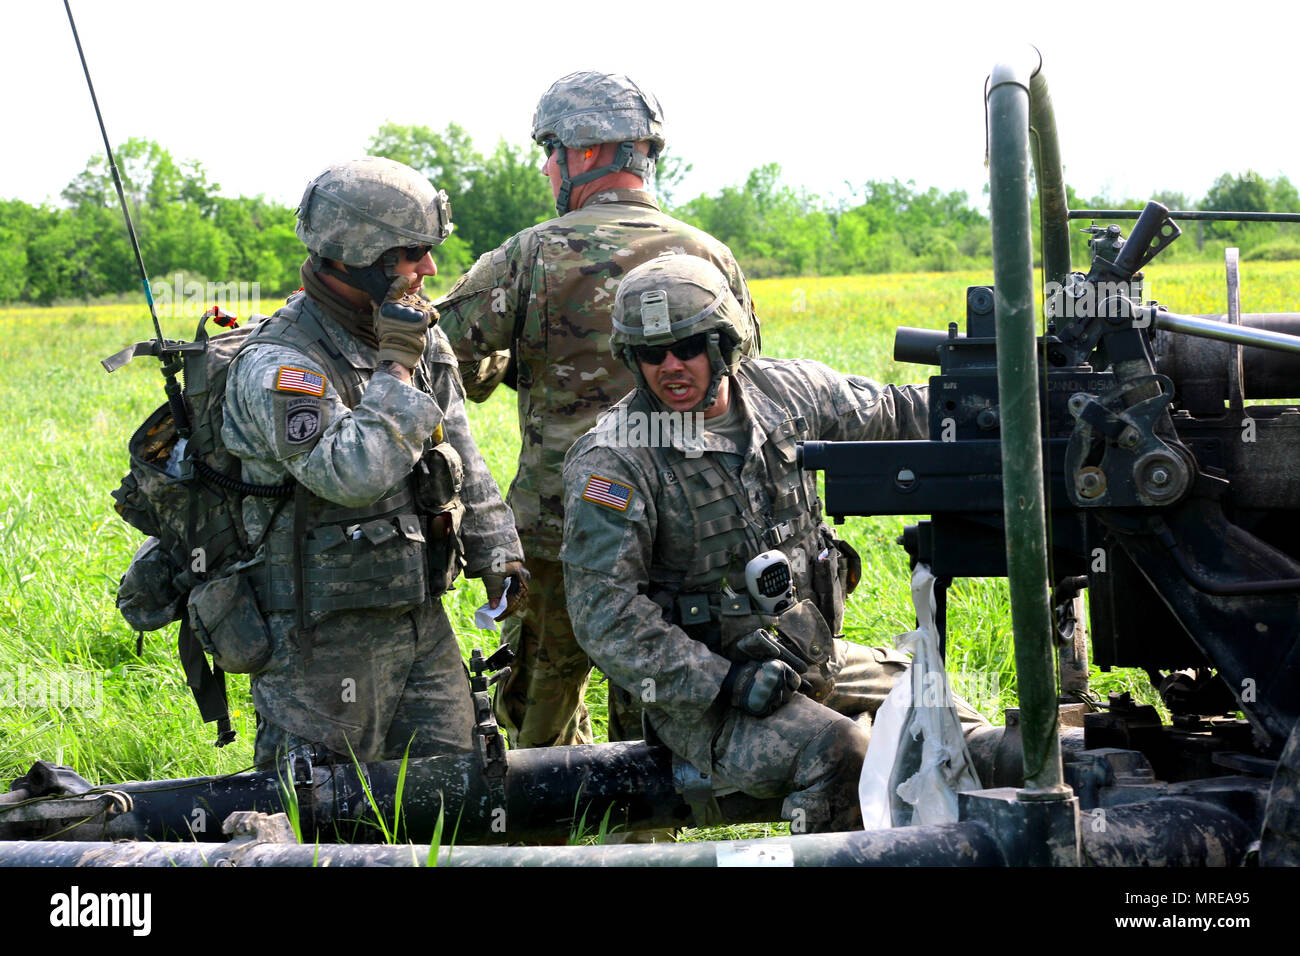 New York Army National Guard Soldiers assigned to Alpha Battery, 1st Battalion, 258th Artillery Regiment, 27th Infantry Brigade Combat Team prepares to fire an M119A2 105mm Howitzer during an air assault artillery raid at Fort Drum on June 9, 2017. During the raid, 4 of the battery's cannons were transported to a landing zone where they were then used to engage a simulated enemy target. (U.S. Army National Guard photo by Sgt. Alexander Rector) - Stock Image